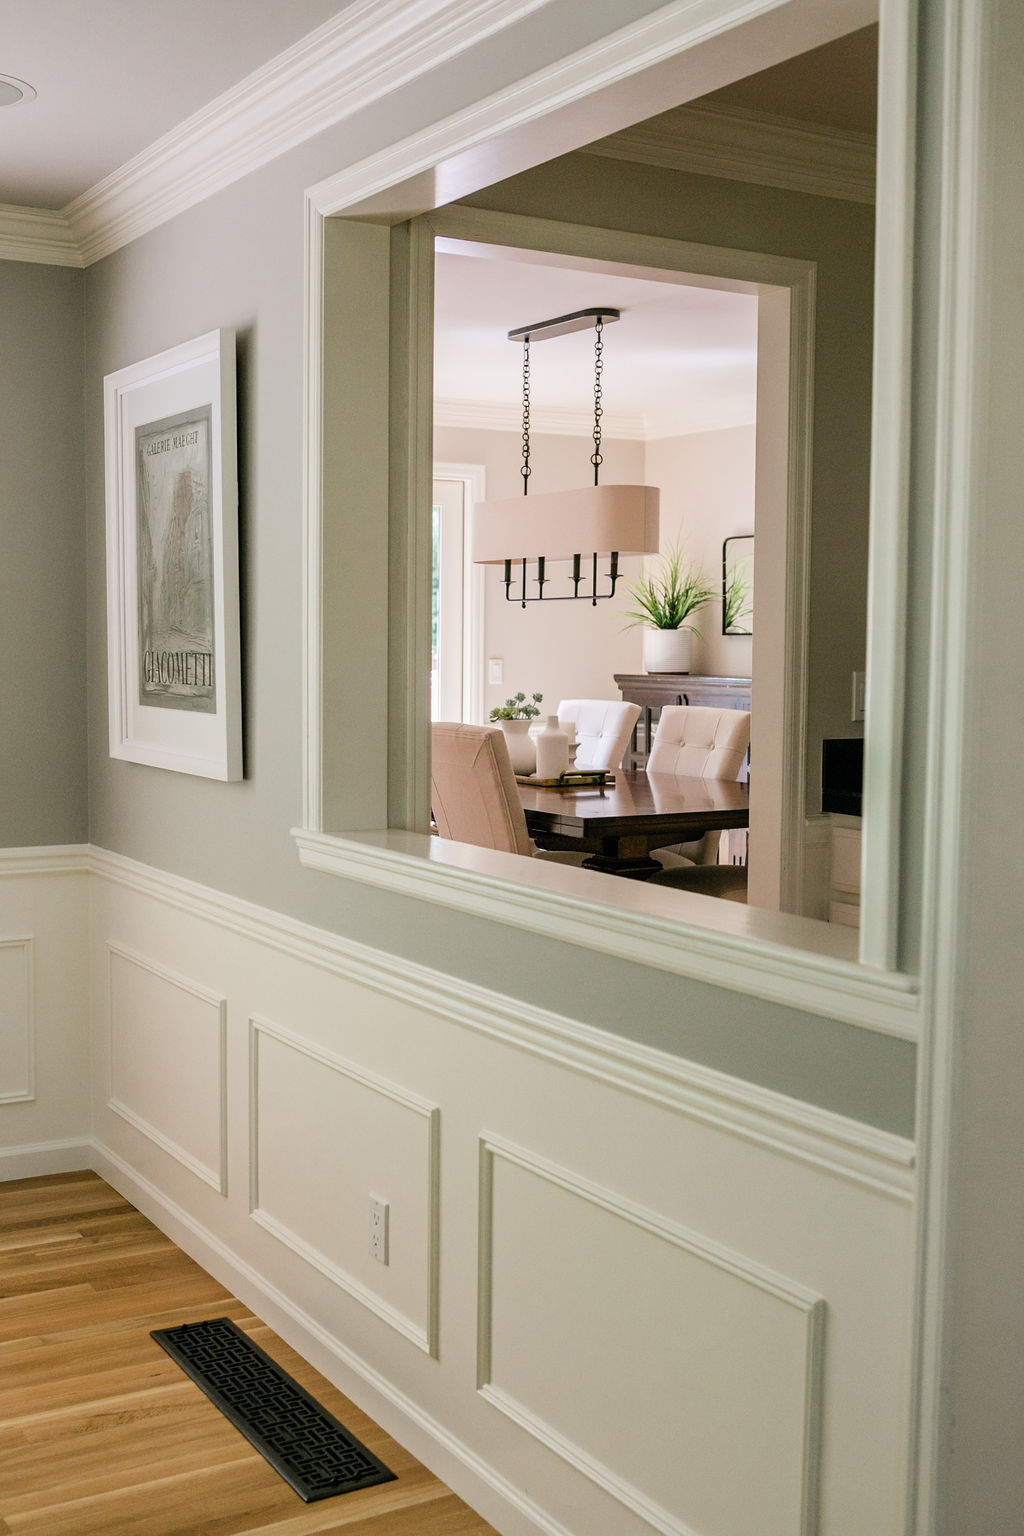 White millwork carried throughout home.